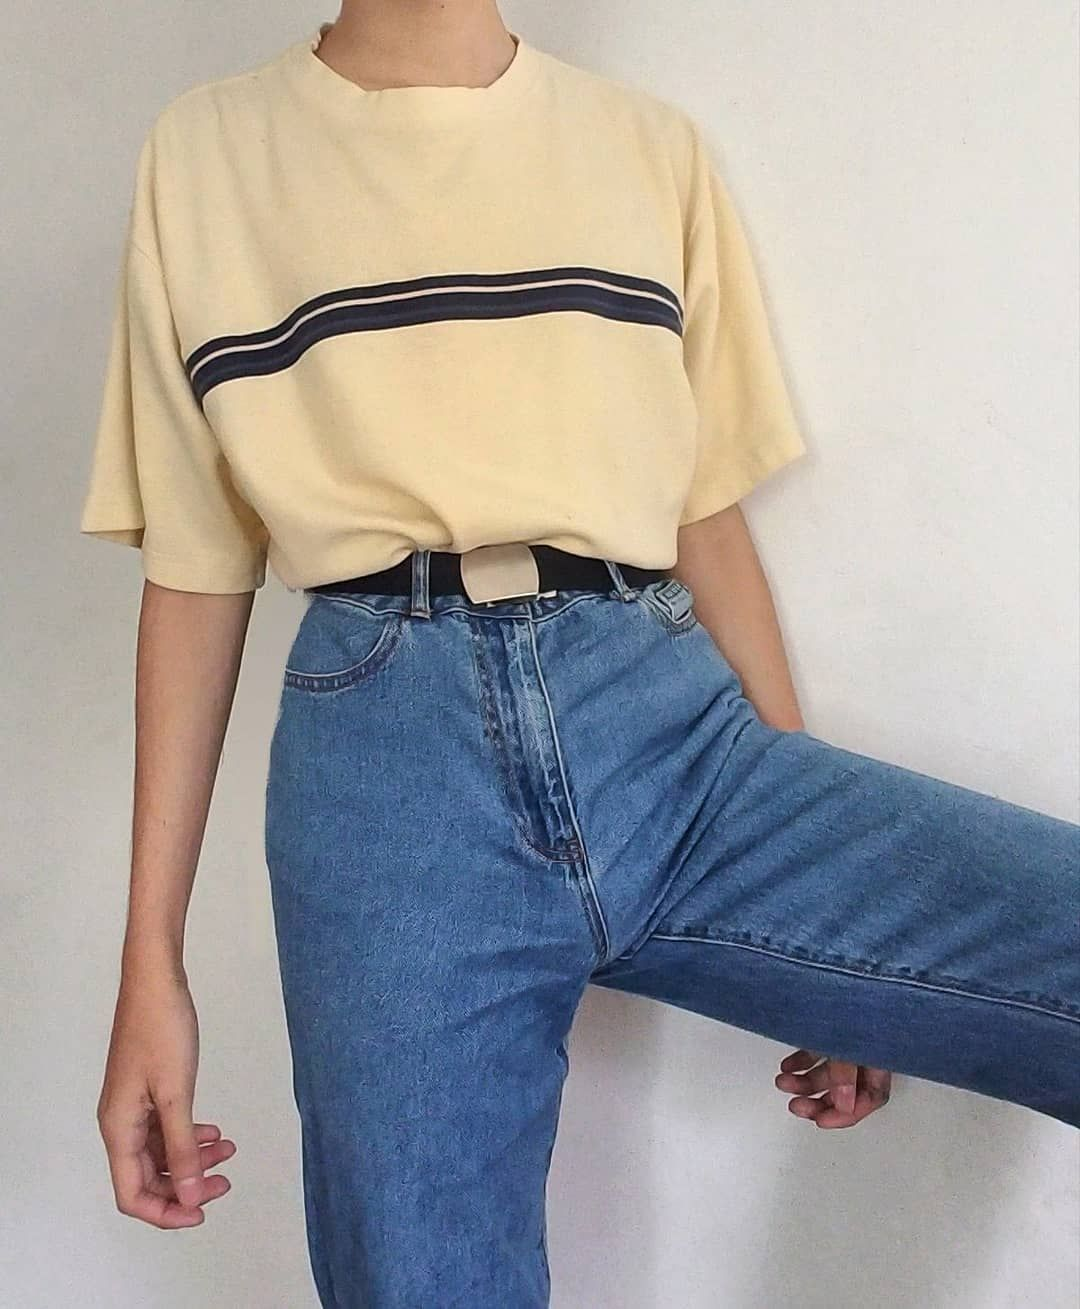 80s 90s Fashion Vintage Retro Aesthetic Fashion In